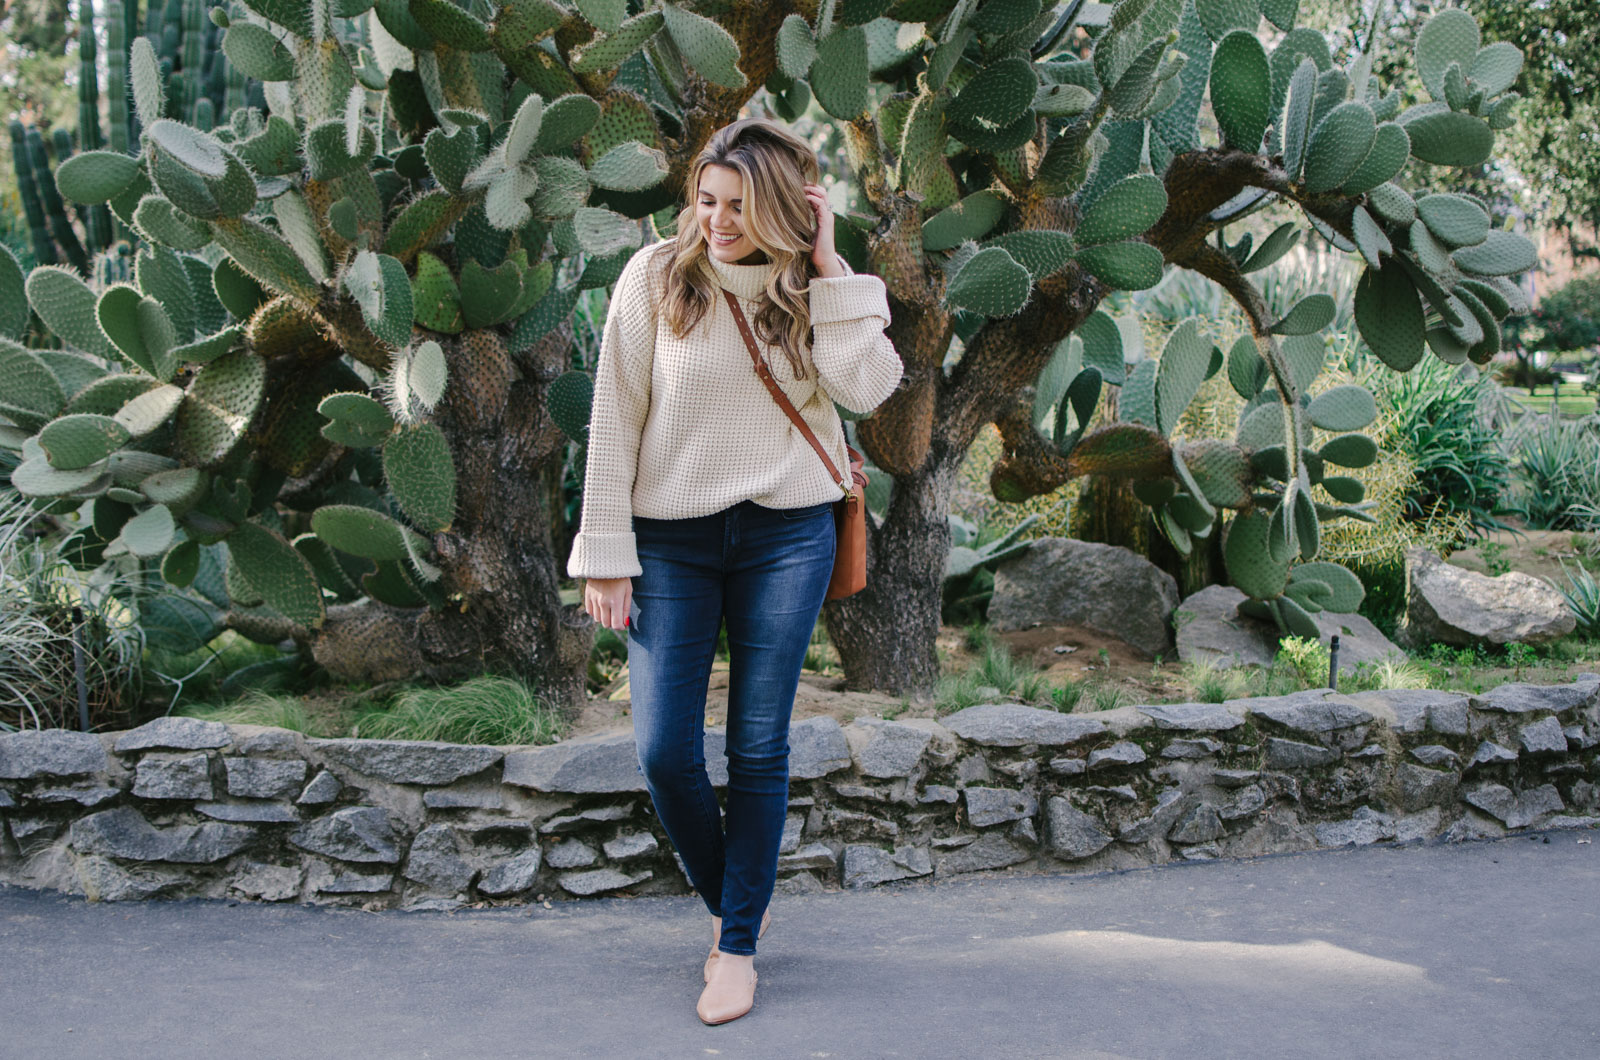 chunky sweater outfit - chunky turtleneck sweater outfit | shop this look or see more cute winter outfits at bylaurenm.com!